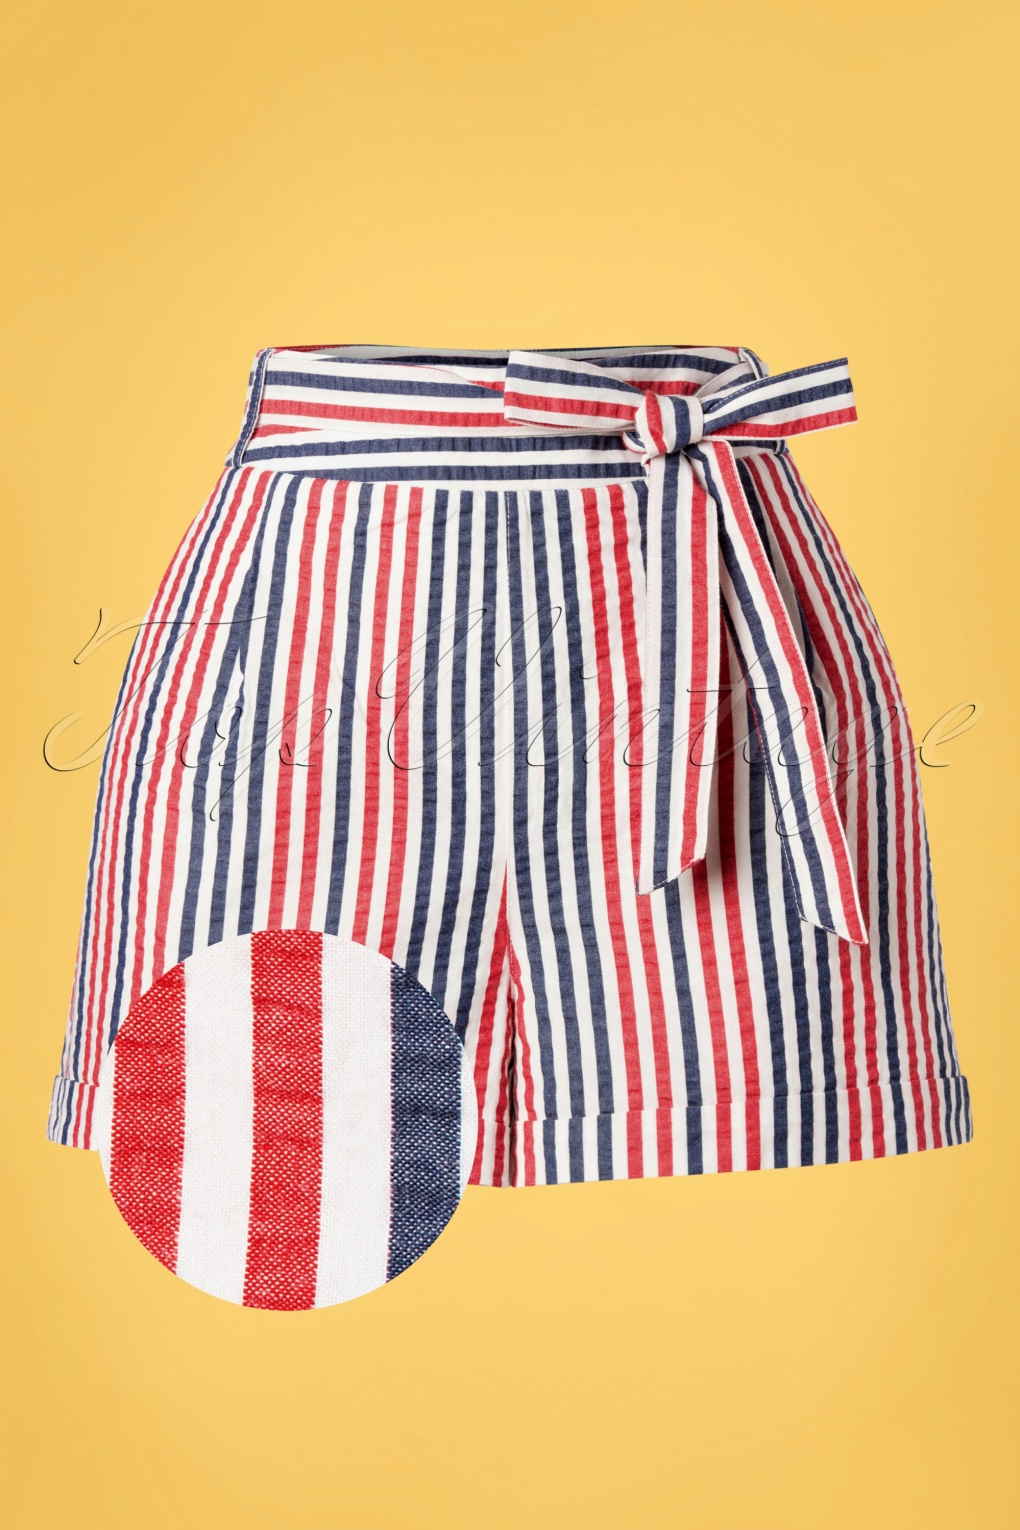 Vintage High Waisted Shorts, Sailor Shorts, Retro Shorts 50s Roisin Bellaria Stripes Shorts in Gardenia White £55.21 AT vintagedancer.com